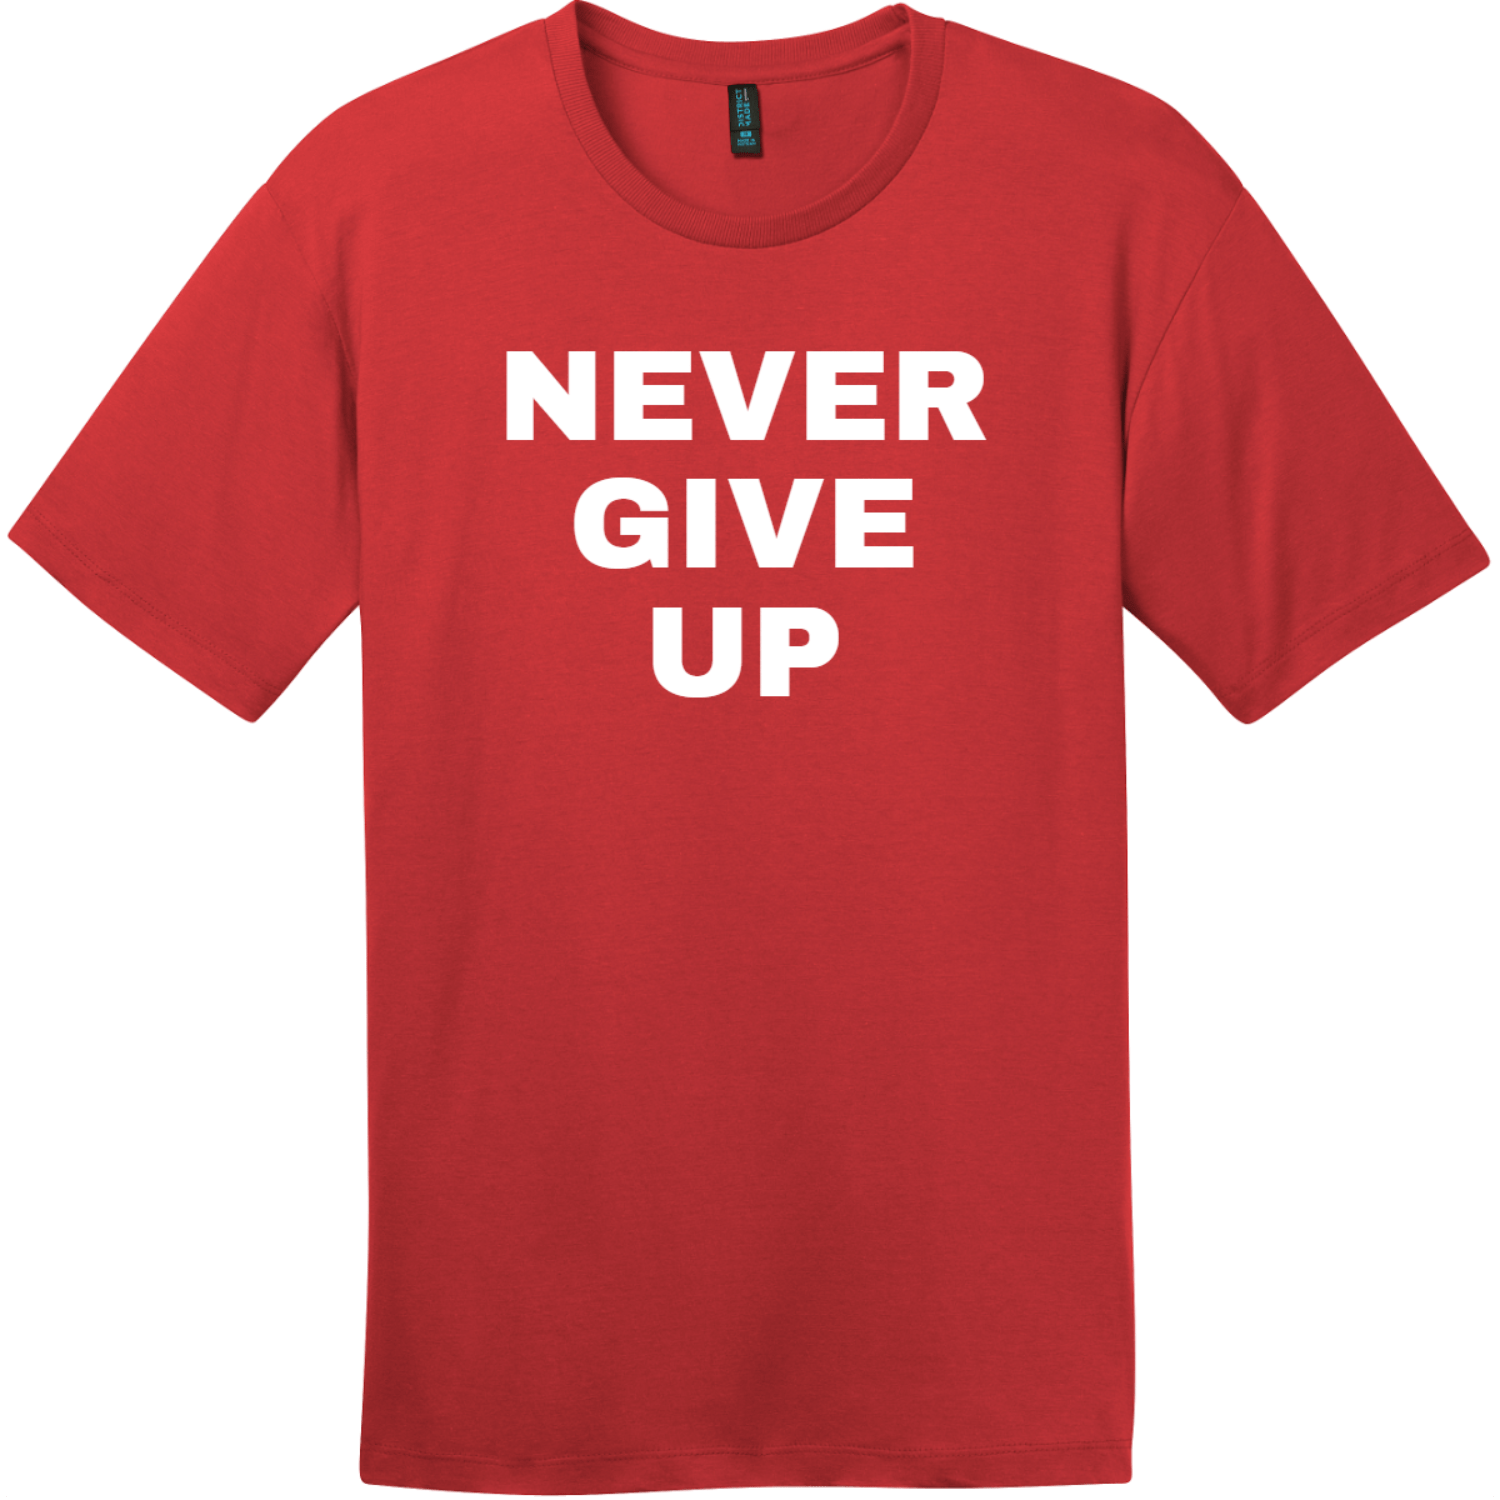 Never Give Up T-Shirt Classic Red District Perfect Weight Tee DT104